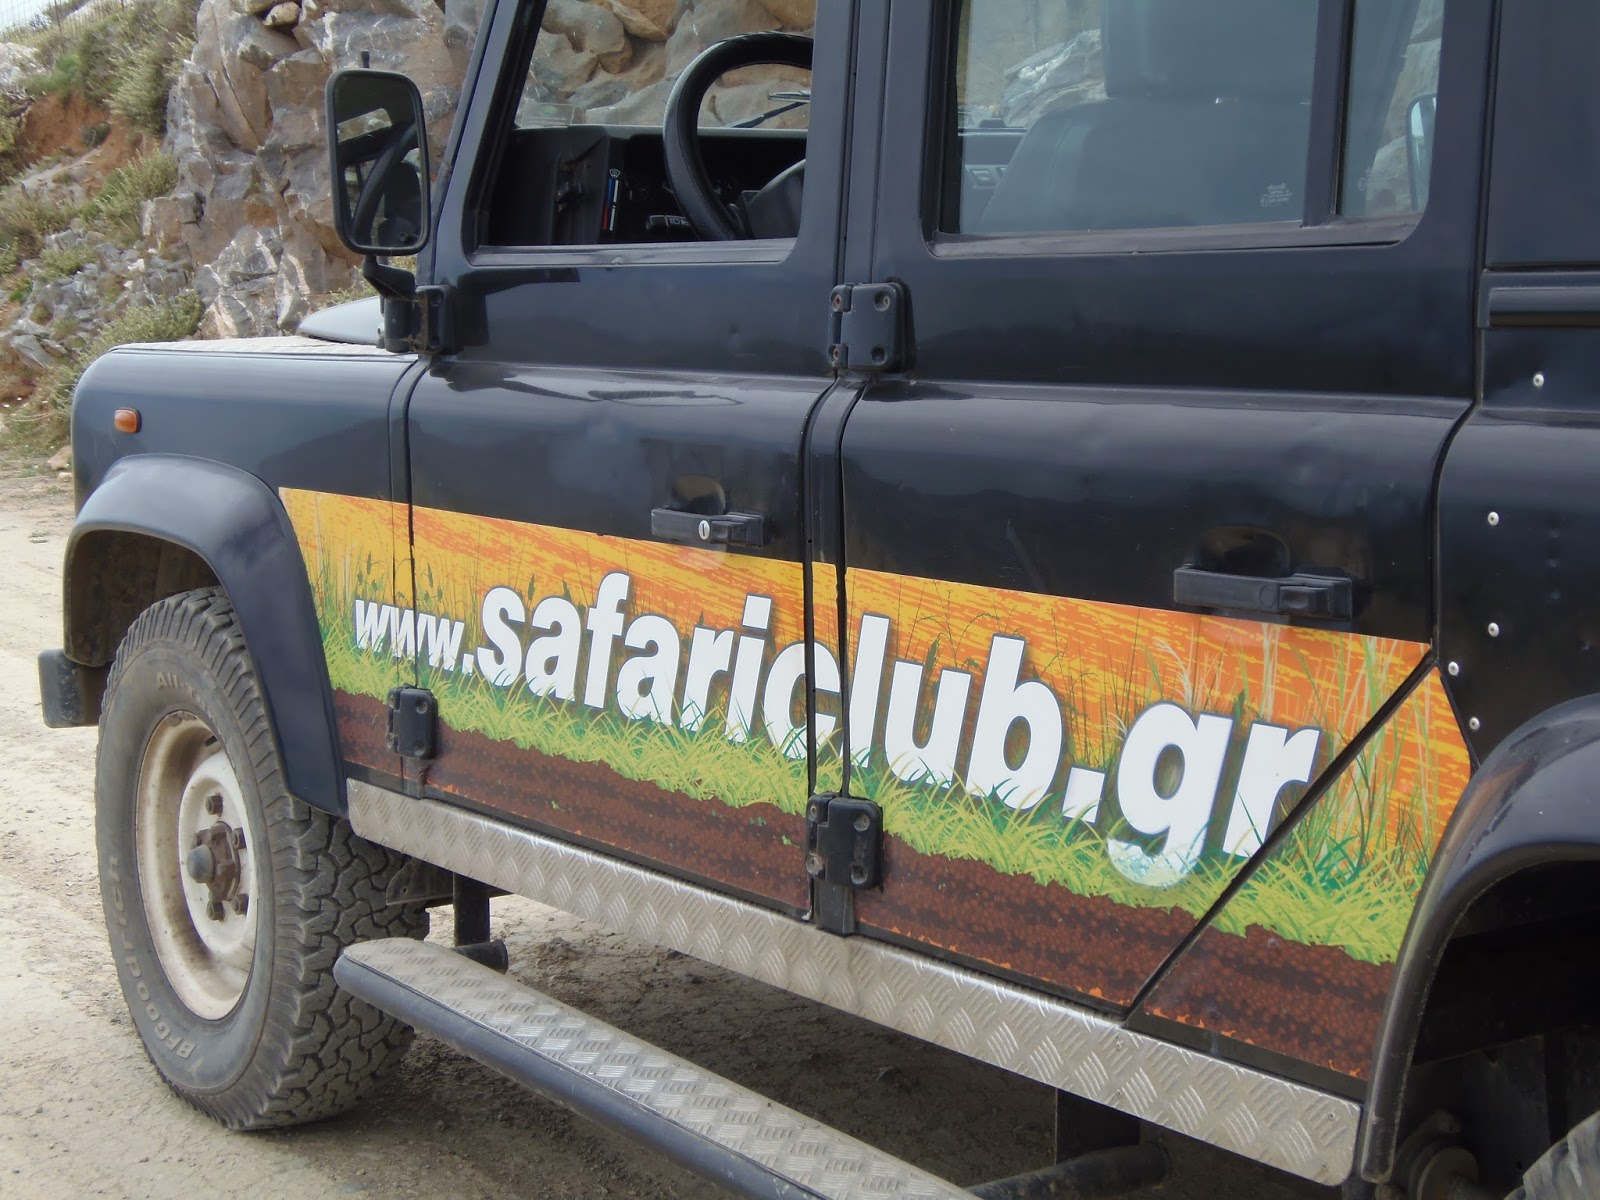 safari club, jeep safari, adventure